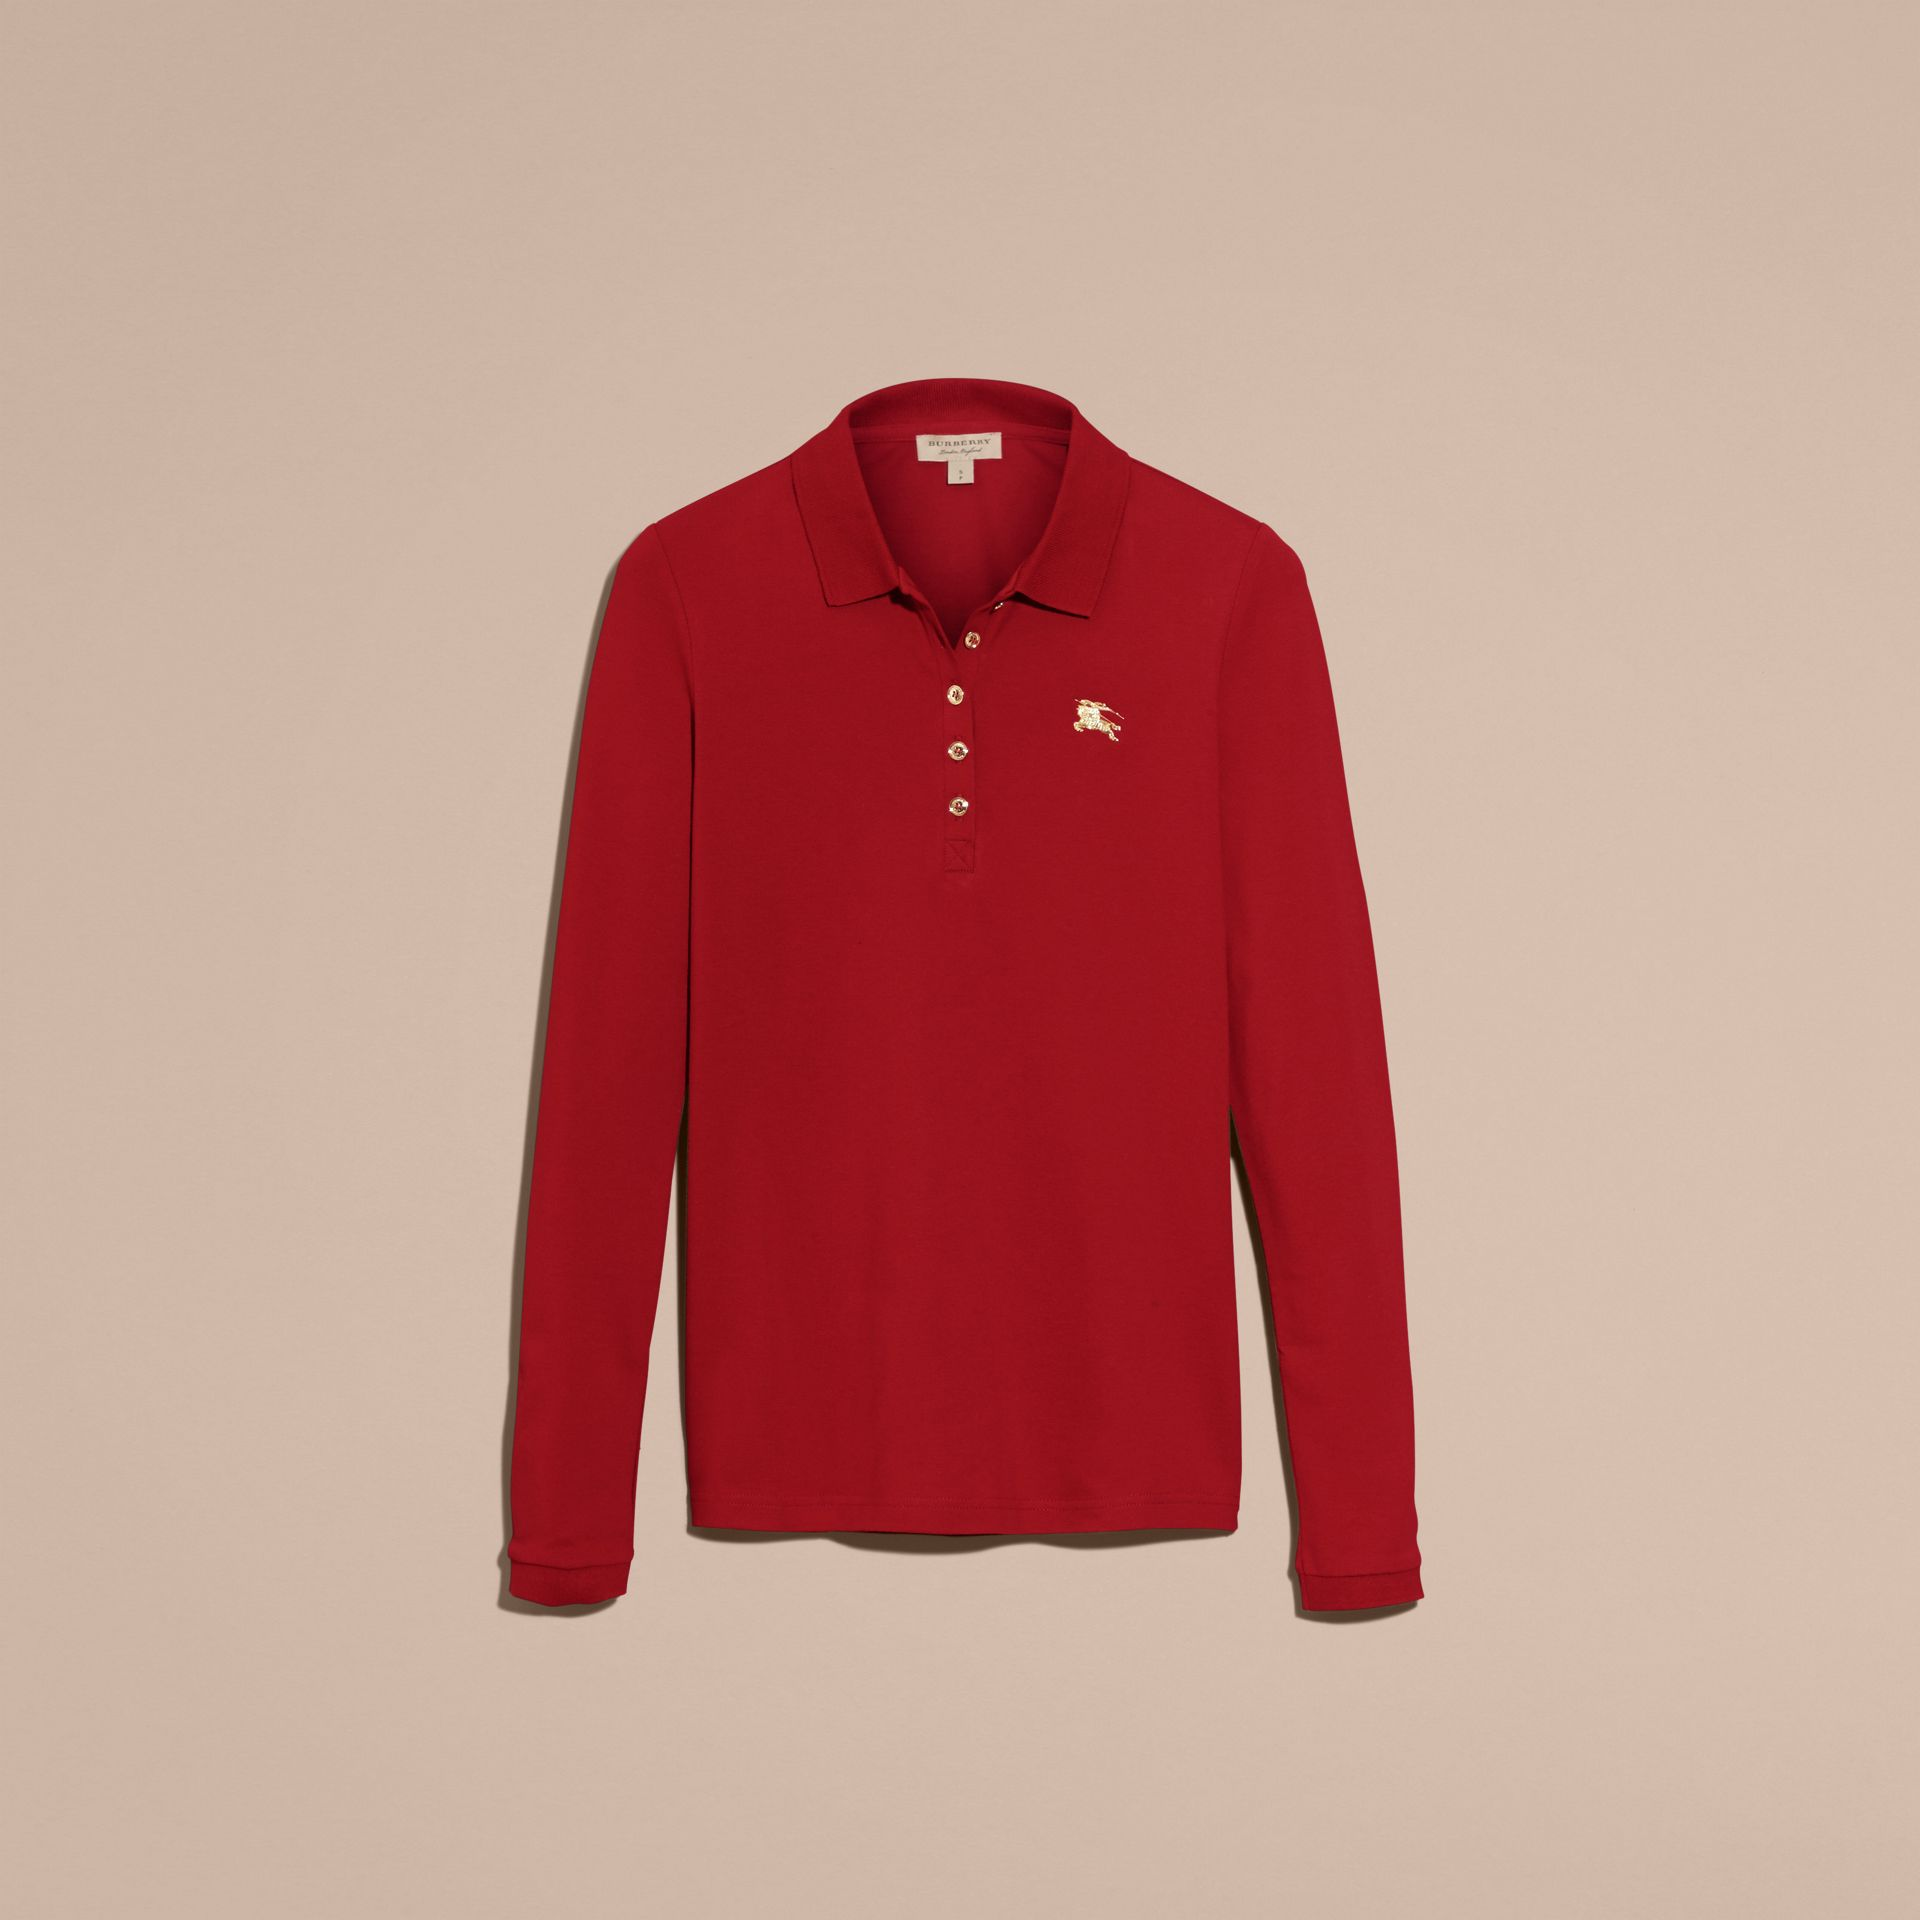 Military red Long-sleeved Stretch Cotton Piqué Polo Shirt Military Red - gallery image 4